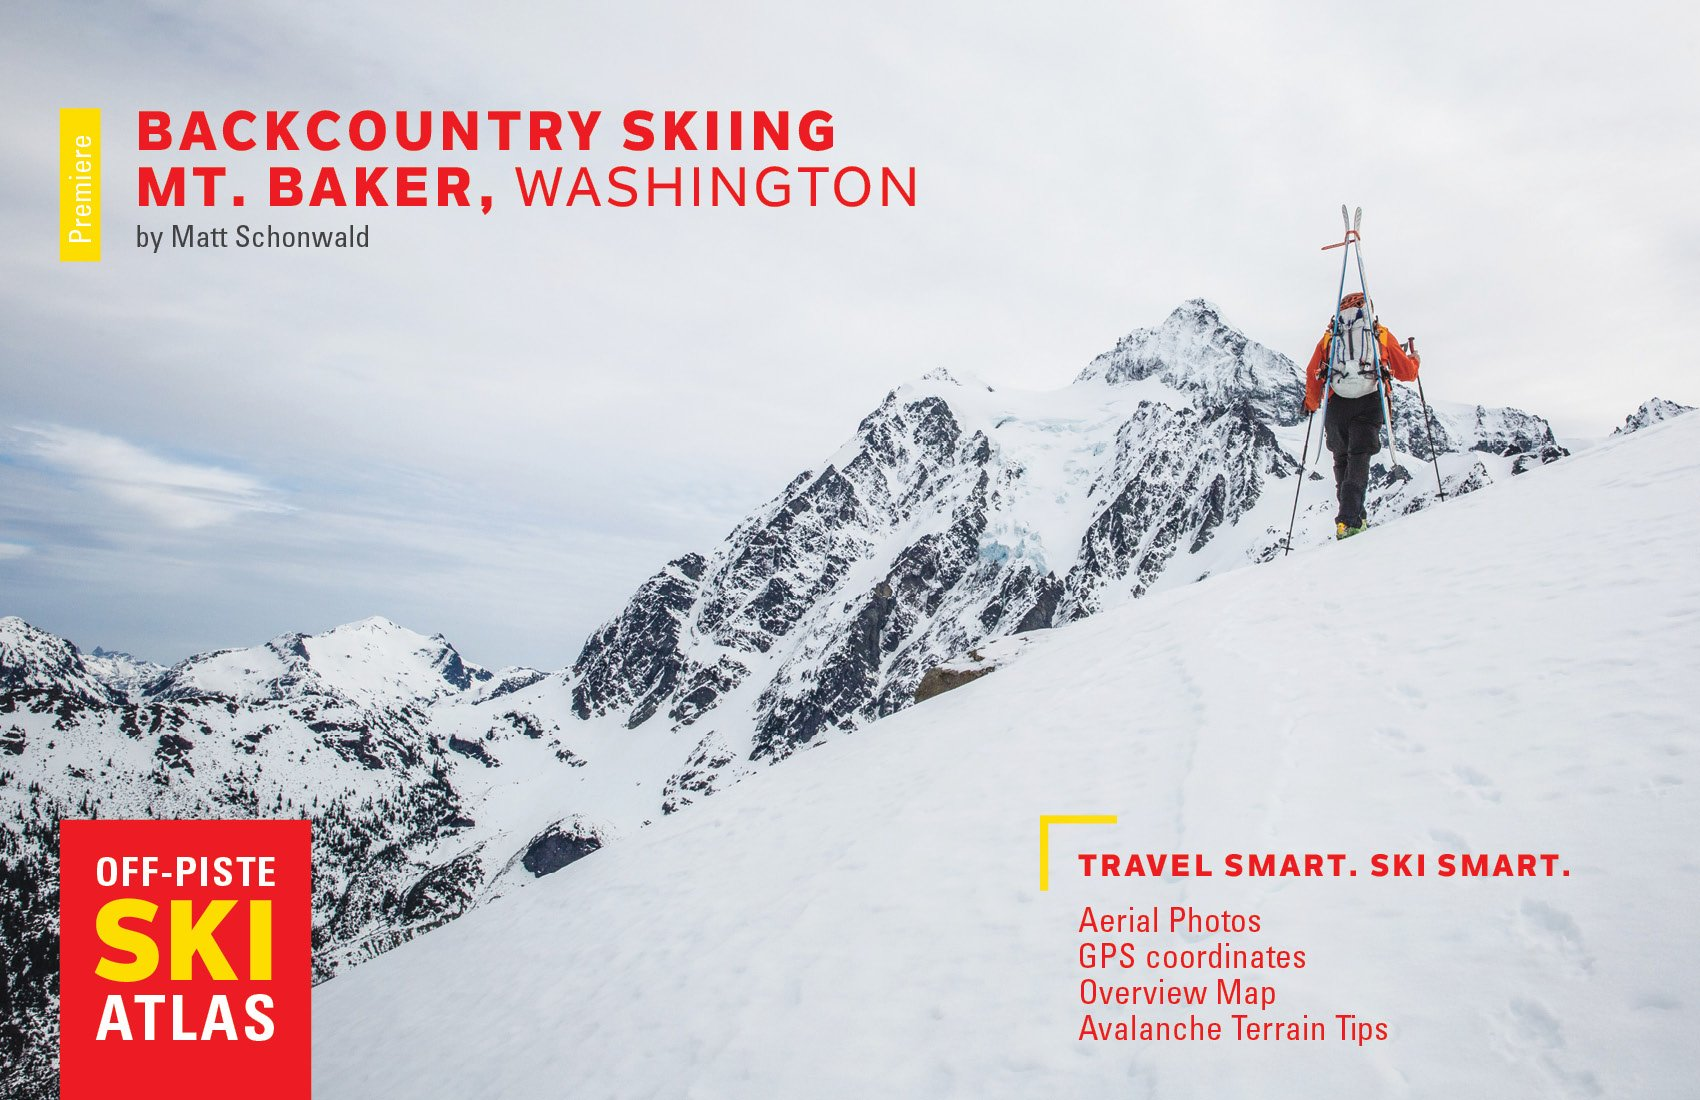 Off-Piste Ski Atlas / Guide :: Backcountry Skiing Mt. Baker Washington